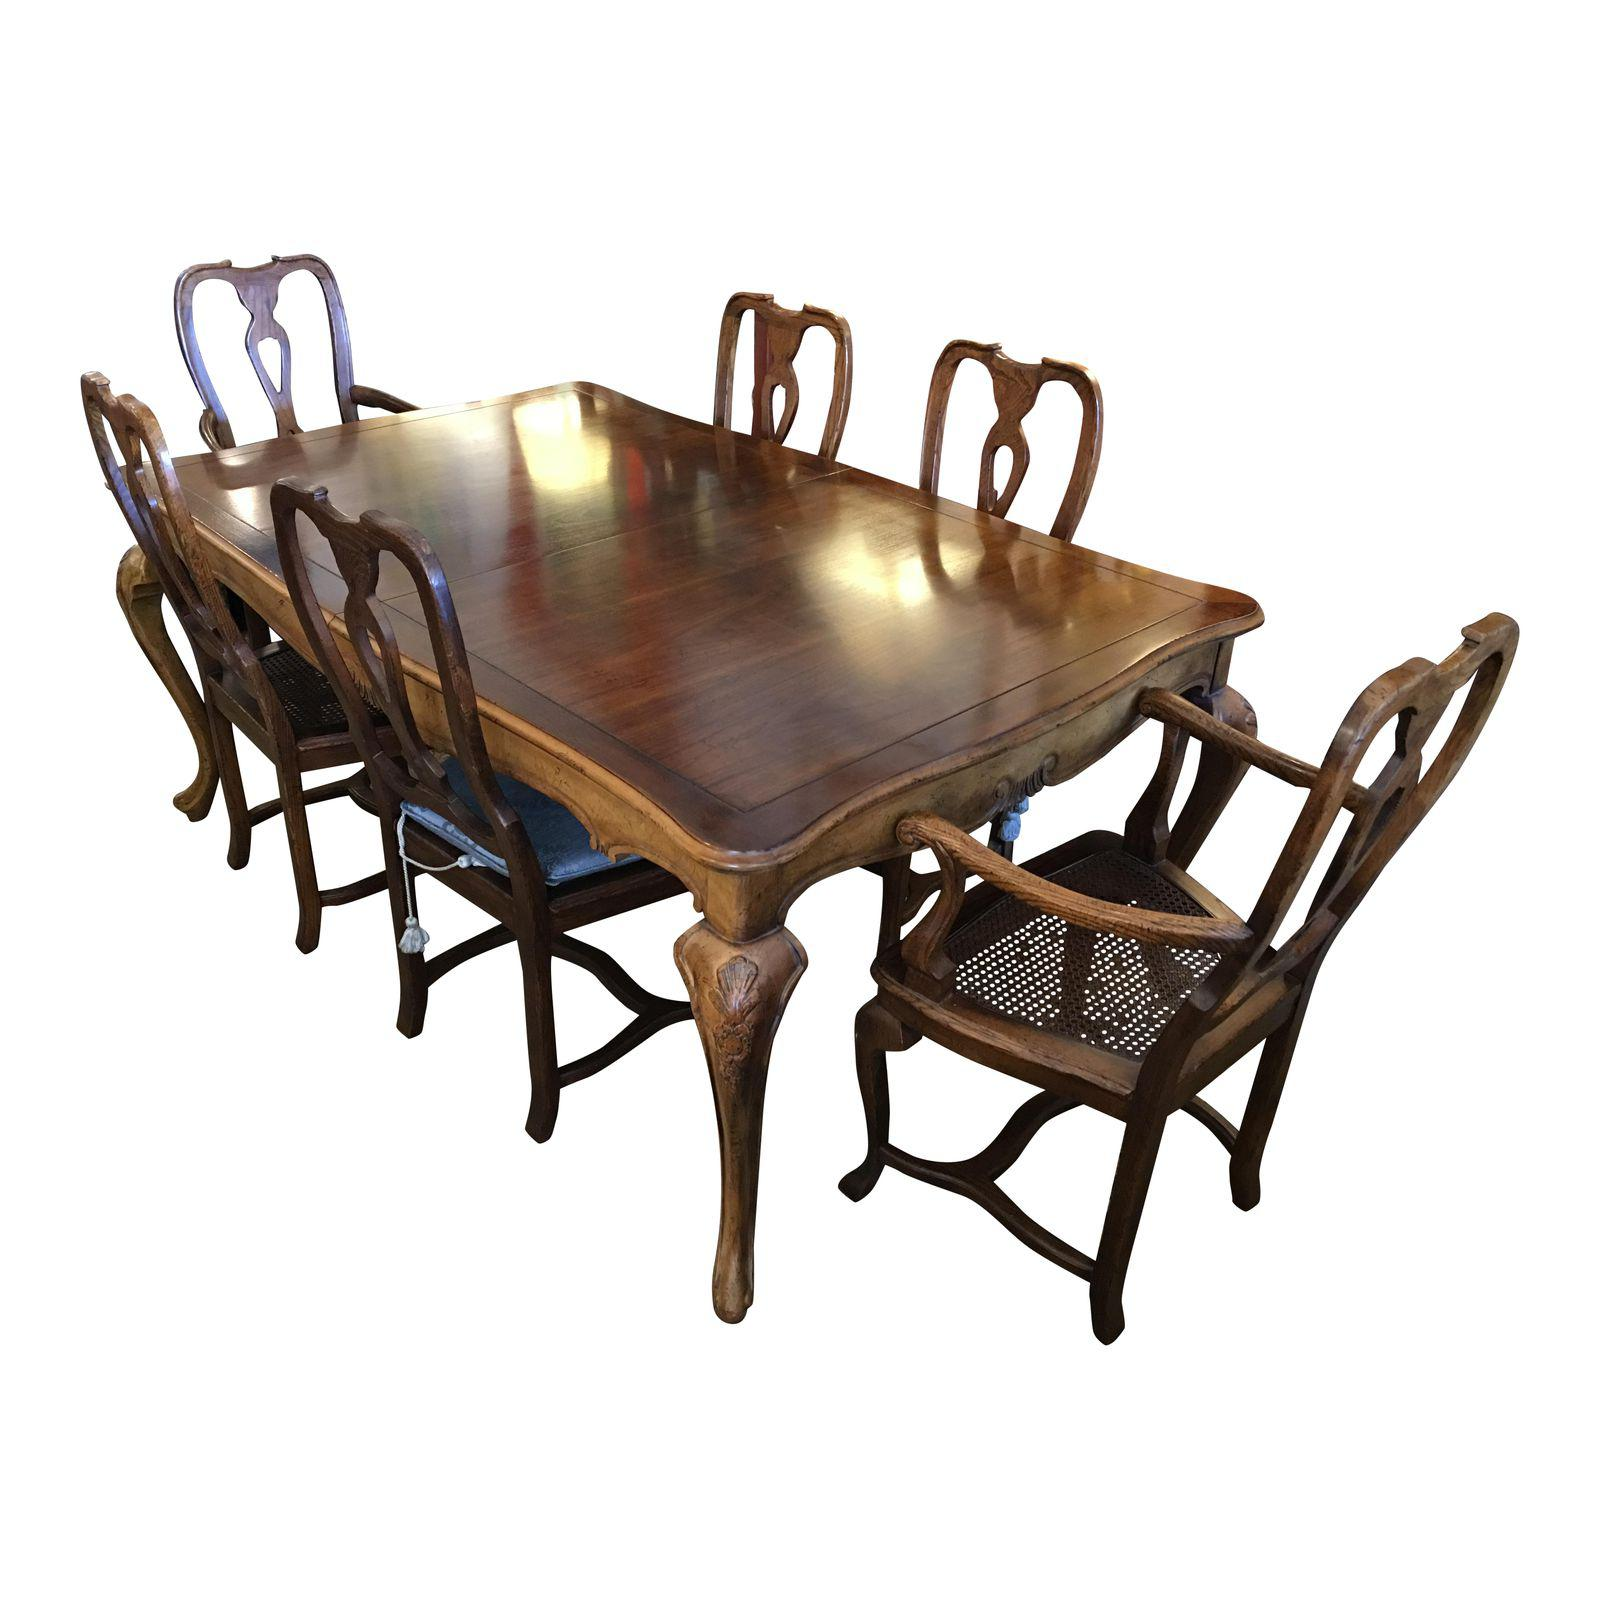 baker dining room table 6 chairs sale baker dining room